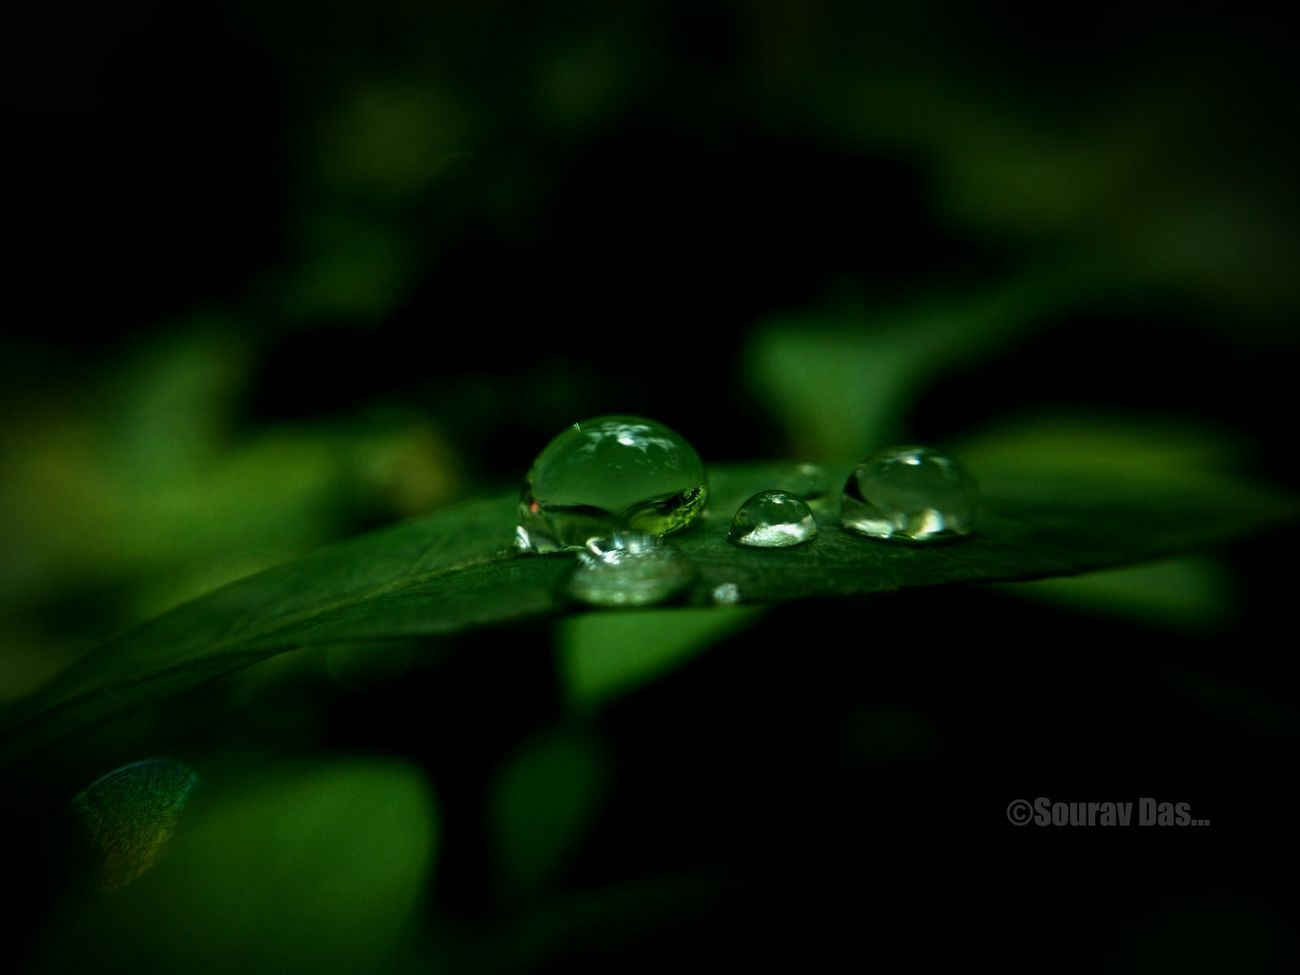 Rain Drops Rain Drops On Leaves Rain Droplets Green Color Close-up No People Selective Focus Leaf One Animal Animal Themes Nature Animals In The Wild Plant Animal Wildlife Beauty In Nature Day Outdoors Likes4likes Colours Of India EyeEm Team Likeforlikers Macro Photography Beauty In Nature Nature